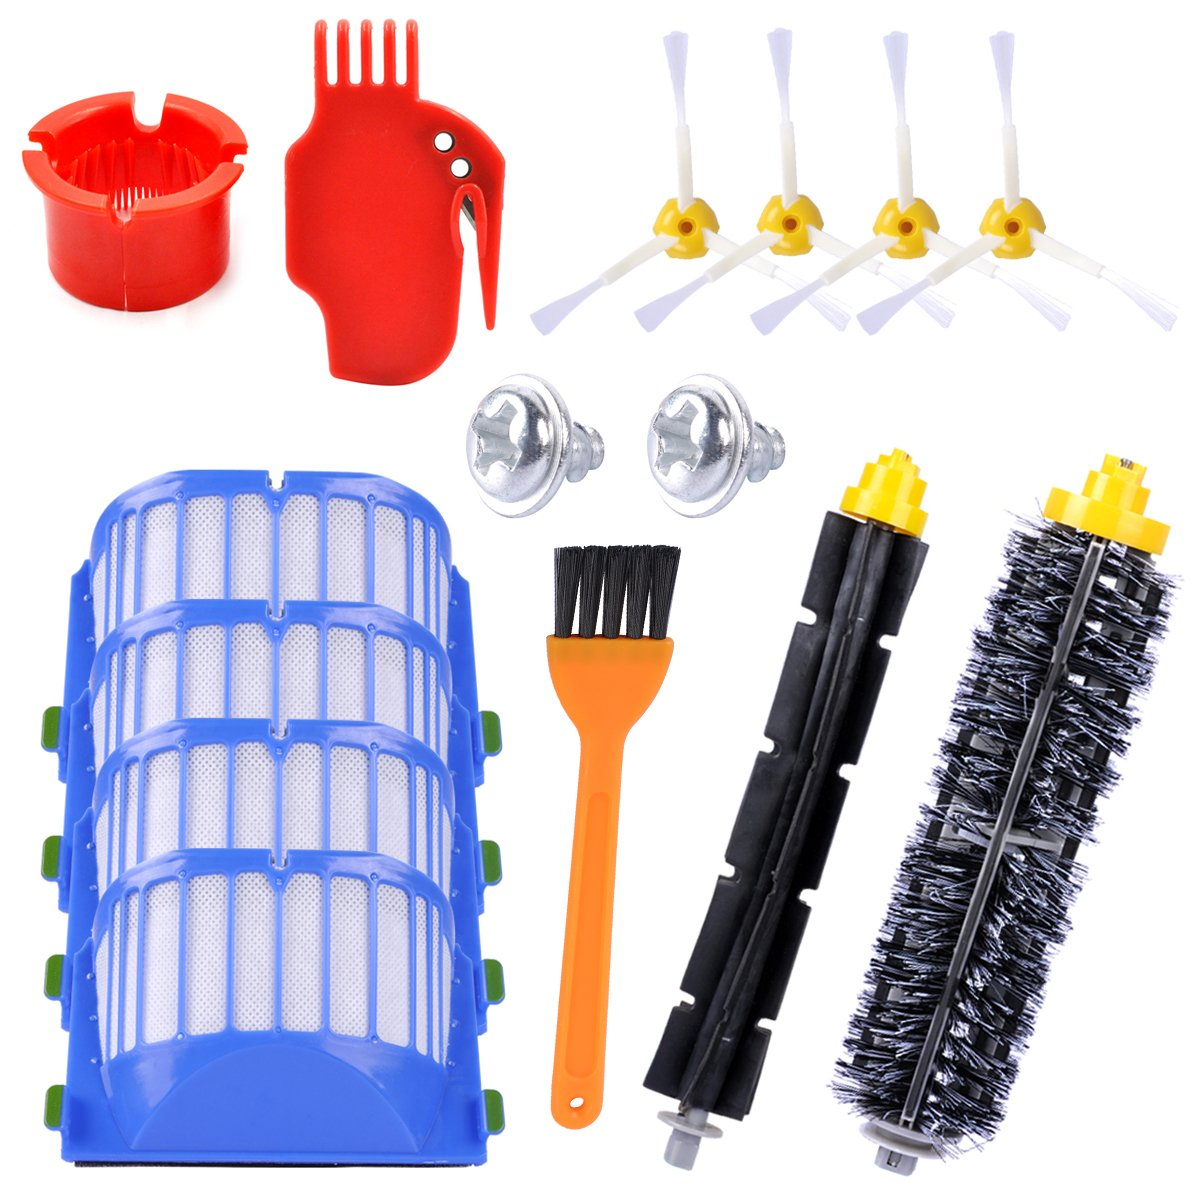 12 Pcs Kit de Accesorios de Repuesto para iRobot Roomba Serie 600 605 610 615 616 620 625 630 631 632 639 650 651 660 670 680 681 por KEEPOW: Amazon.es: ...